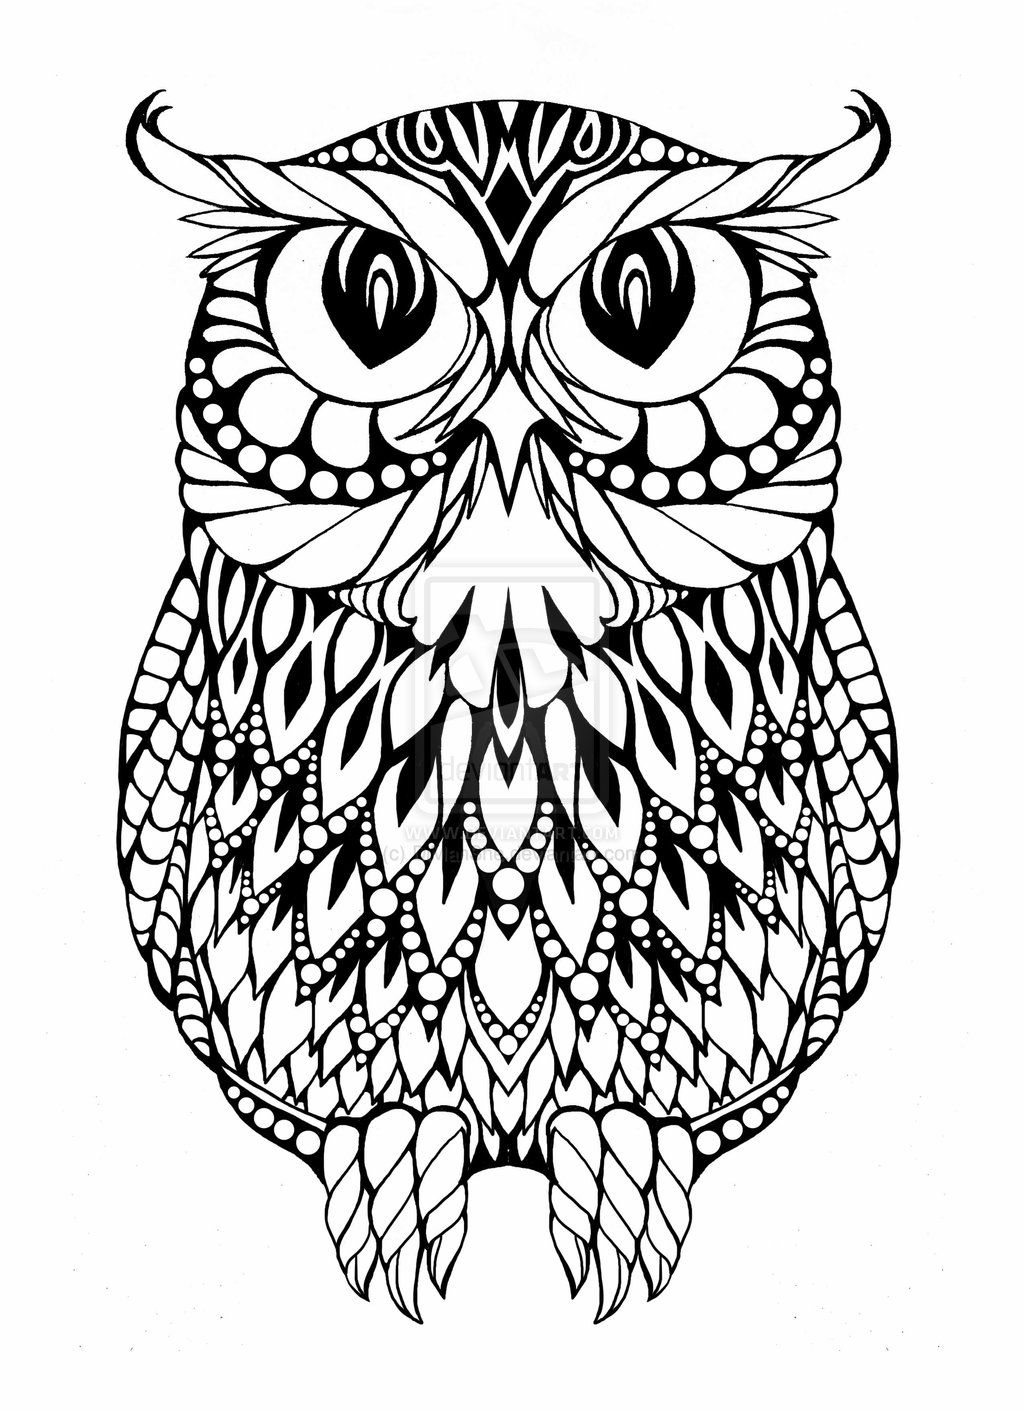 Owl coloring pages Coloring Pages & Pictures IMAGIXS Halloween Pinterest Owl, Adult ...